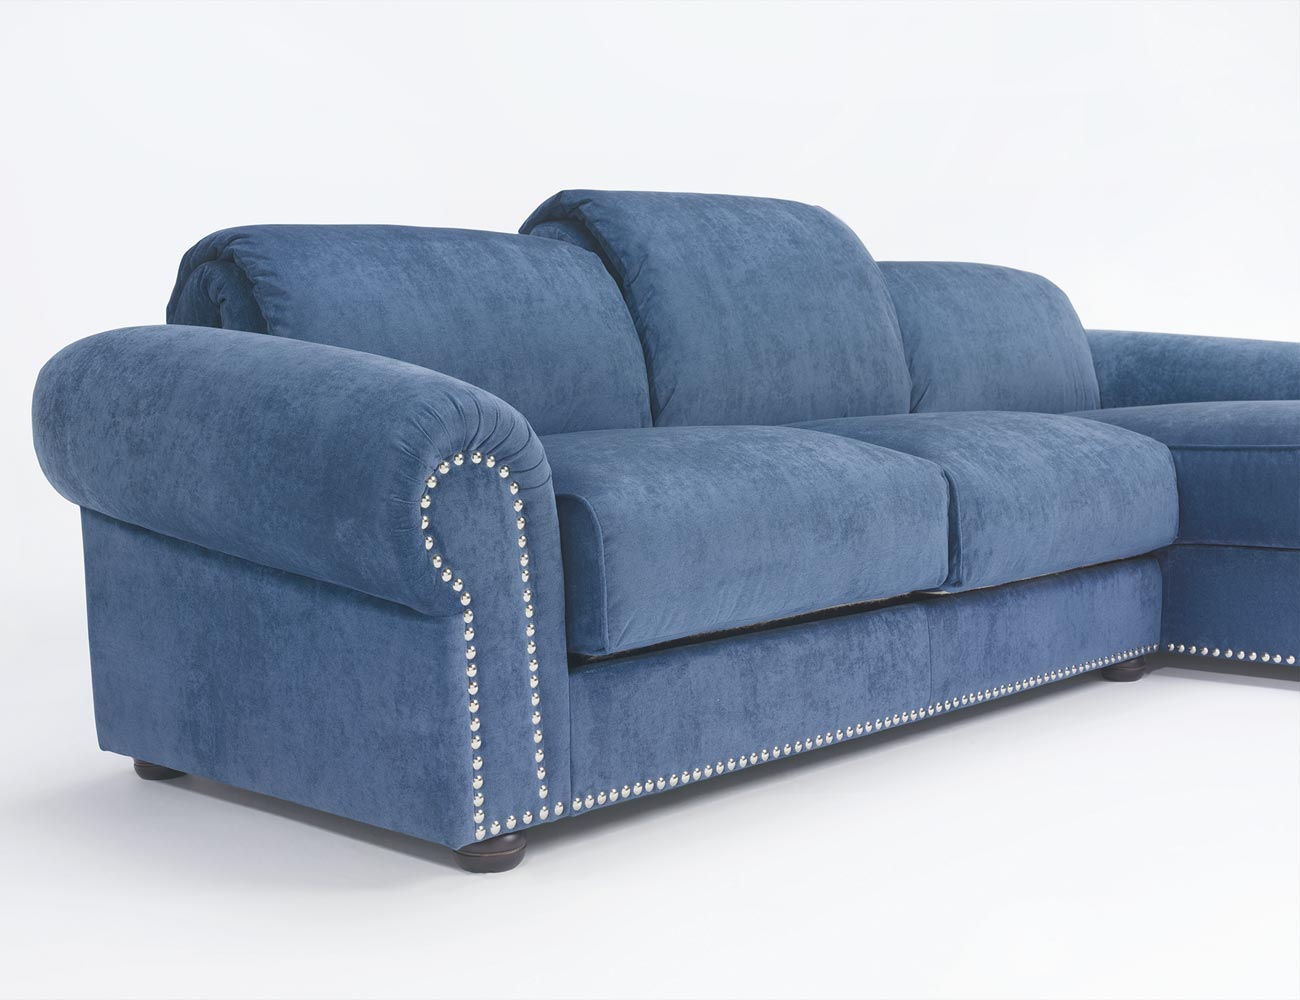 Sofa chaiselongue gran lujo decorativo azul 119